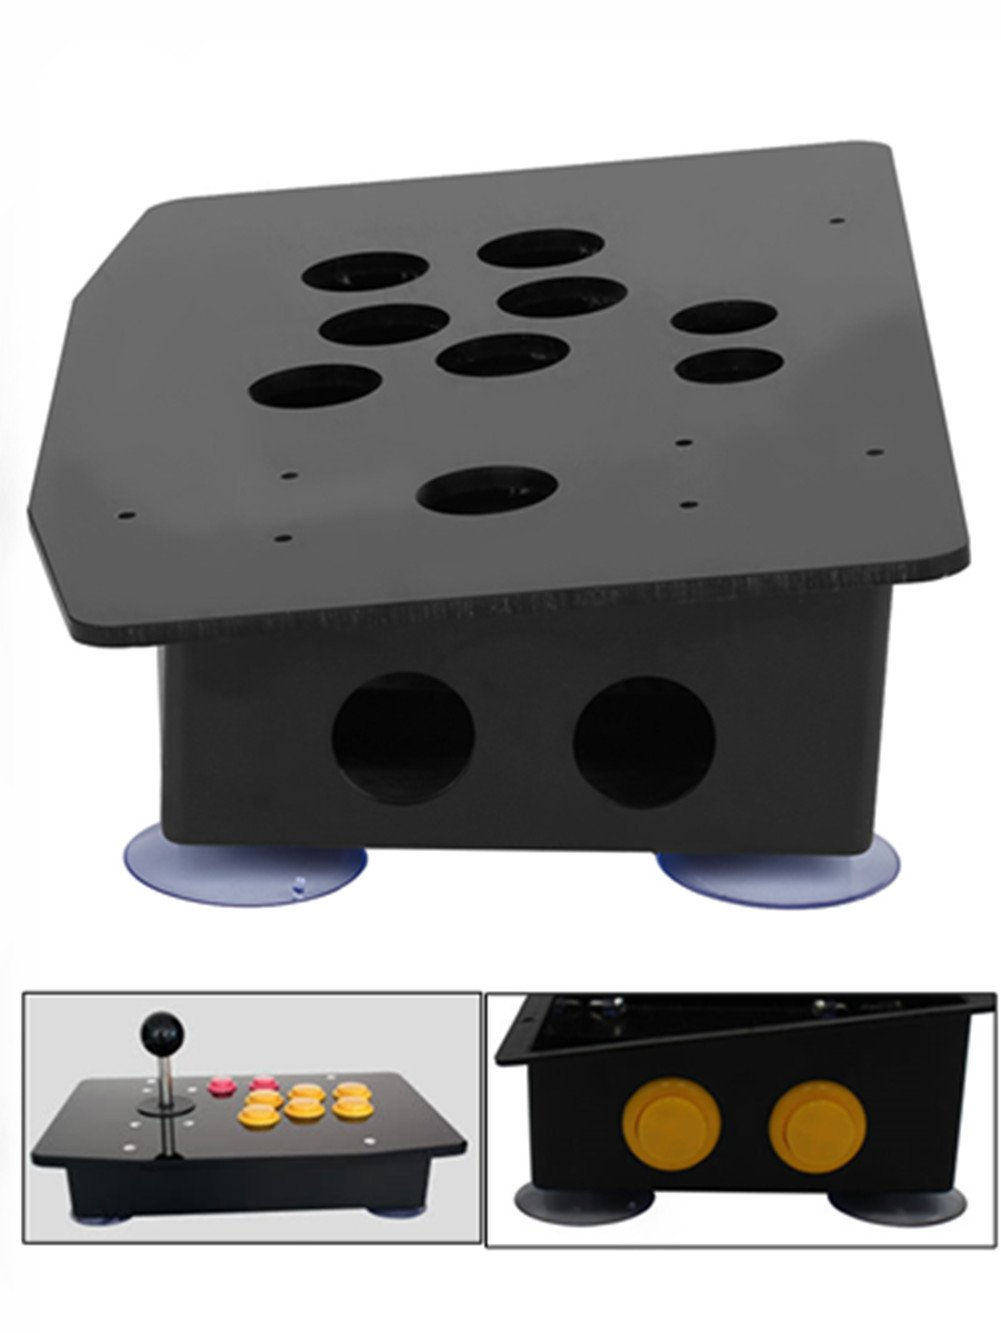 New Arrival DIY Arcade Panel Acrylic Inclined+Joystick Case Replacement for Arcade Game,Black